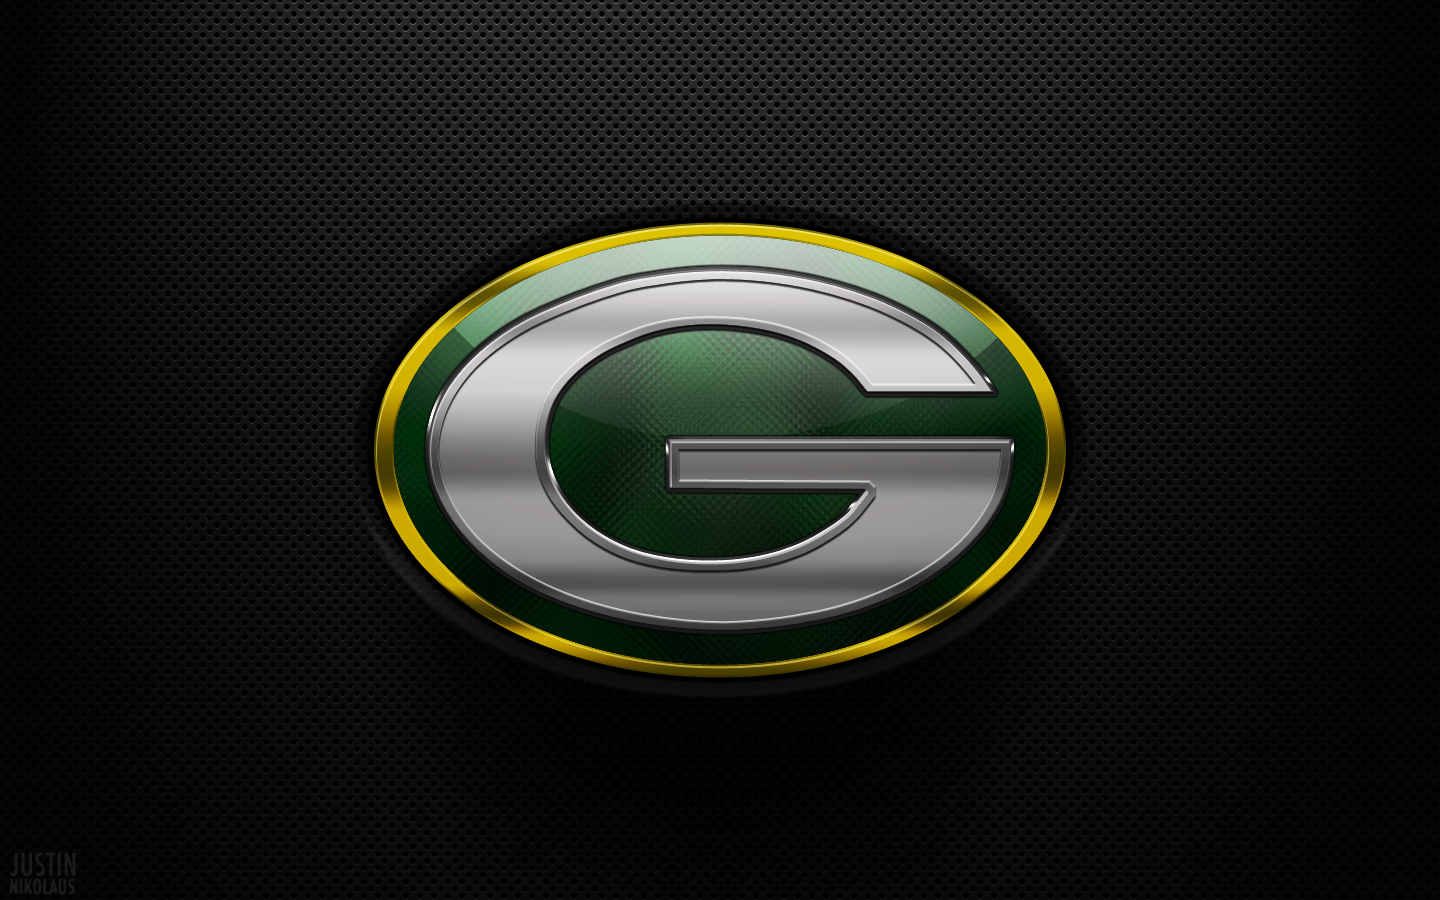 green bay packers wallpaper glass logo iphone 365